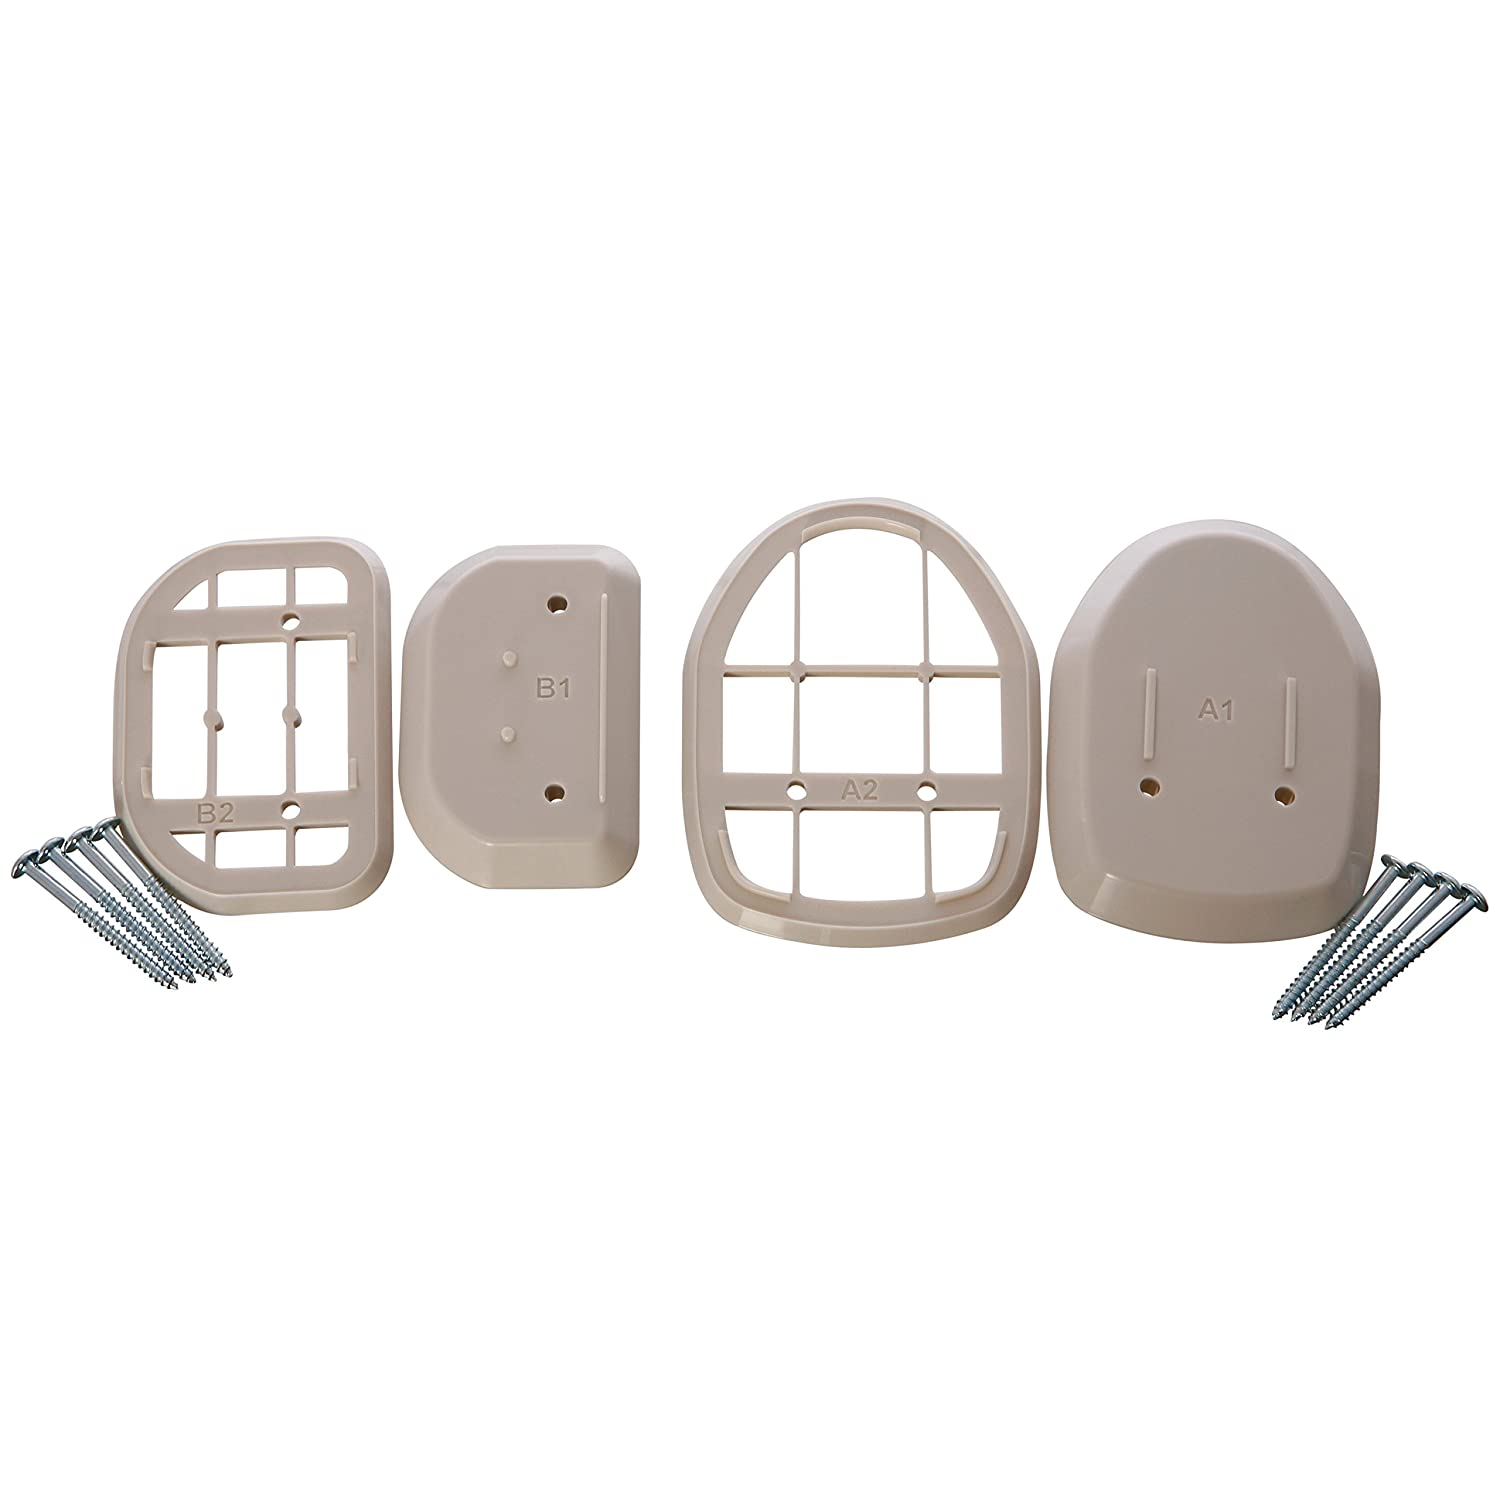 Dreambaby L821 Spacers for Retractable Gate (White)